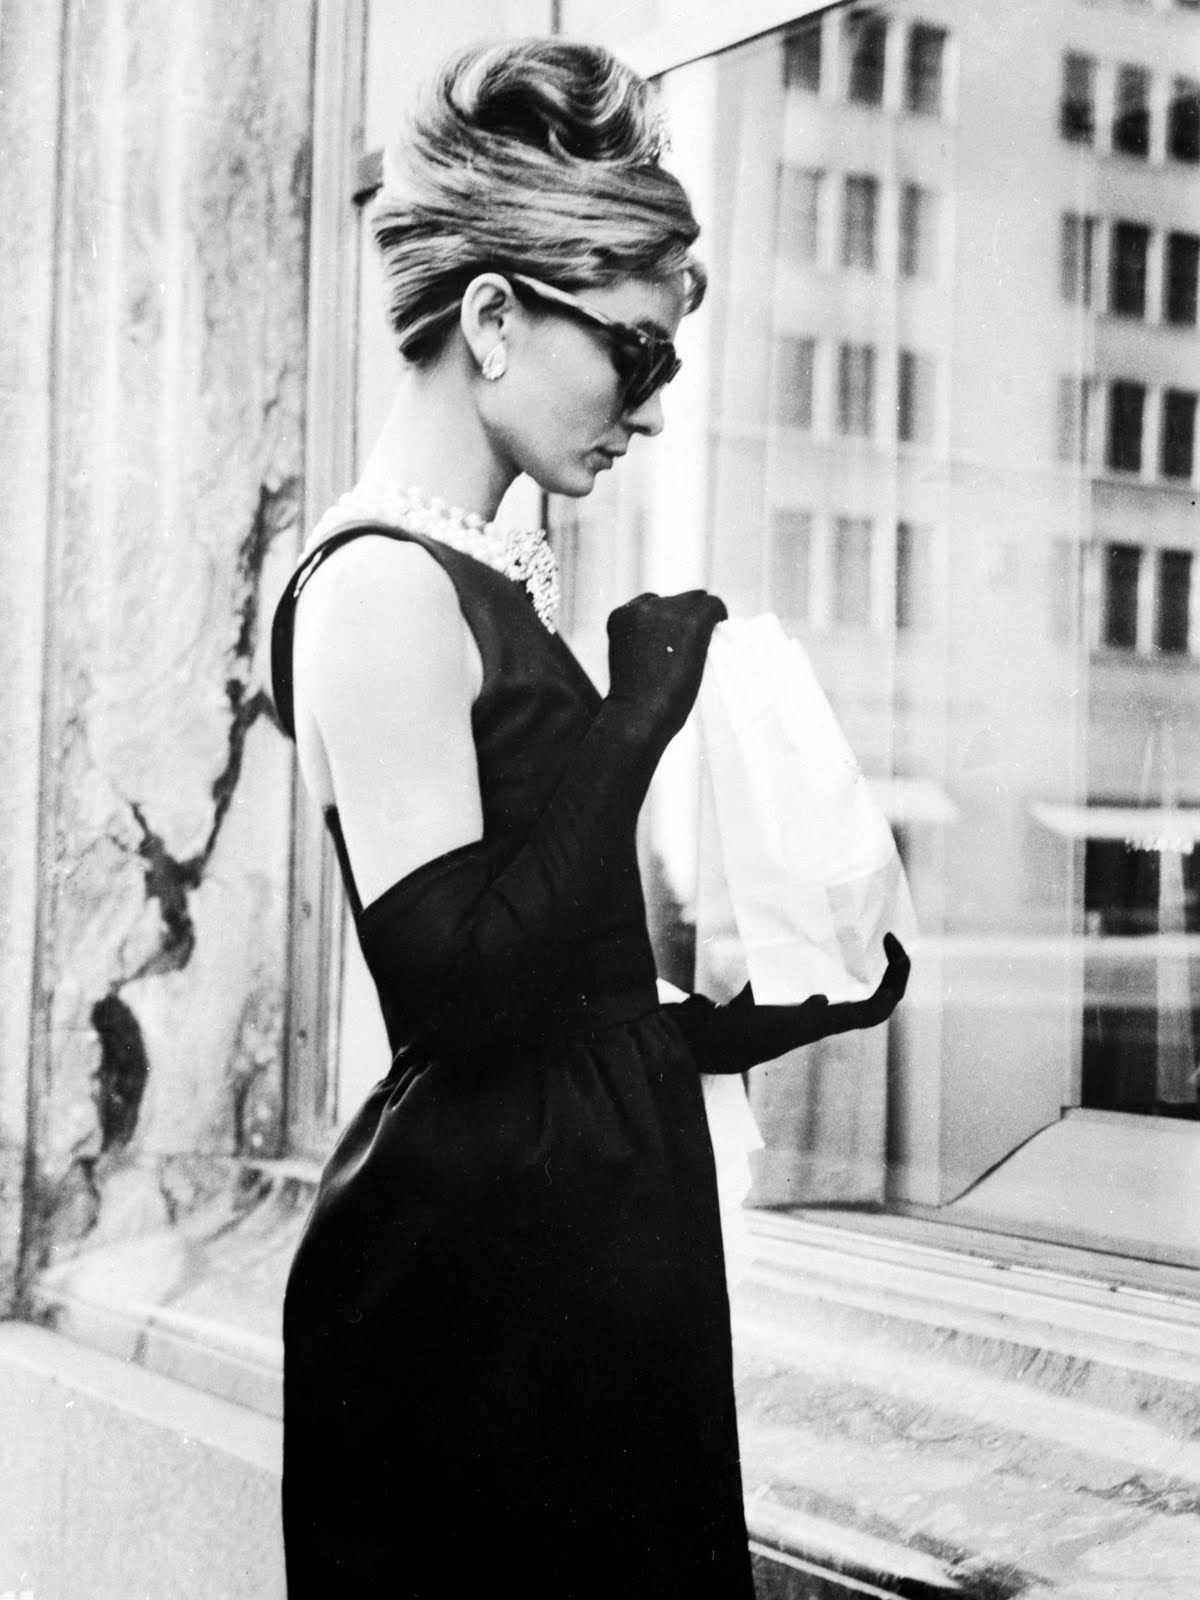 http://3.bp.blogspot.com/-0nWXJu6Tmwg/TtIXCmO_bdI/AAAAAAAAAOg/d4qcEpR63yE/s1600/Audrey+Hepburn%252C+Breakfast+At+Tiffany%2527s%252C+Little+Black+Dress%252C+Maxi-Dress.jpg